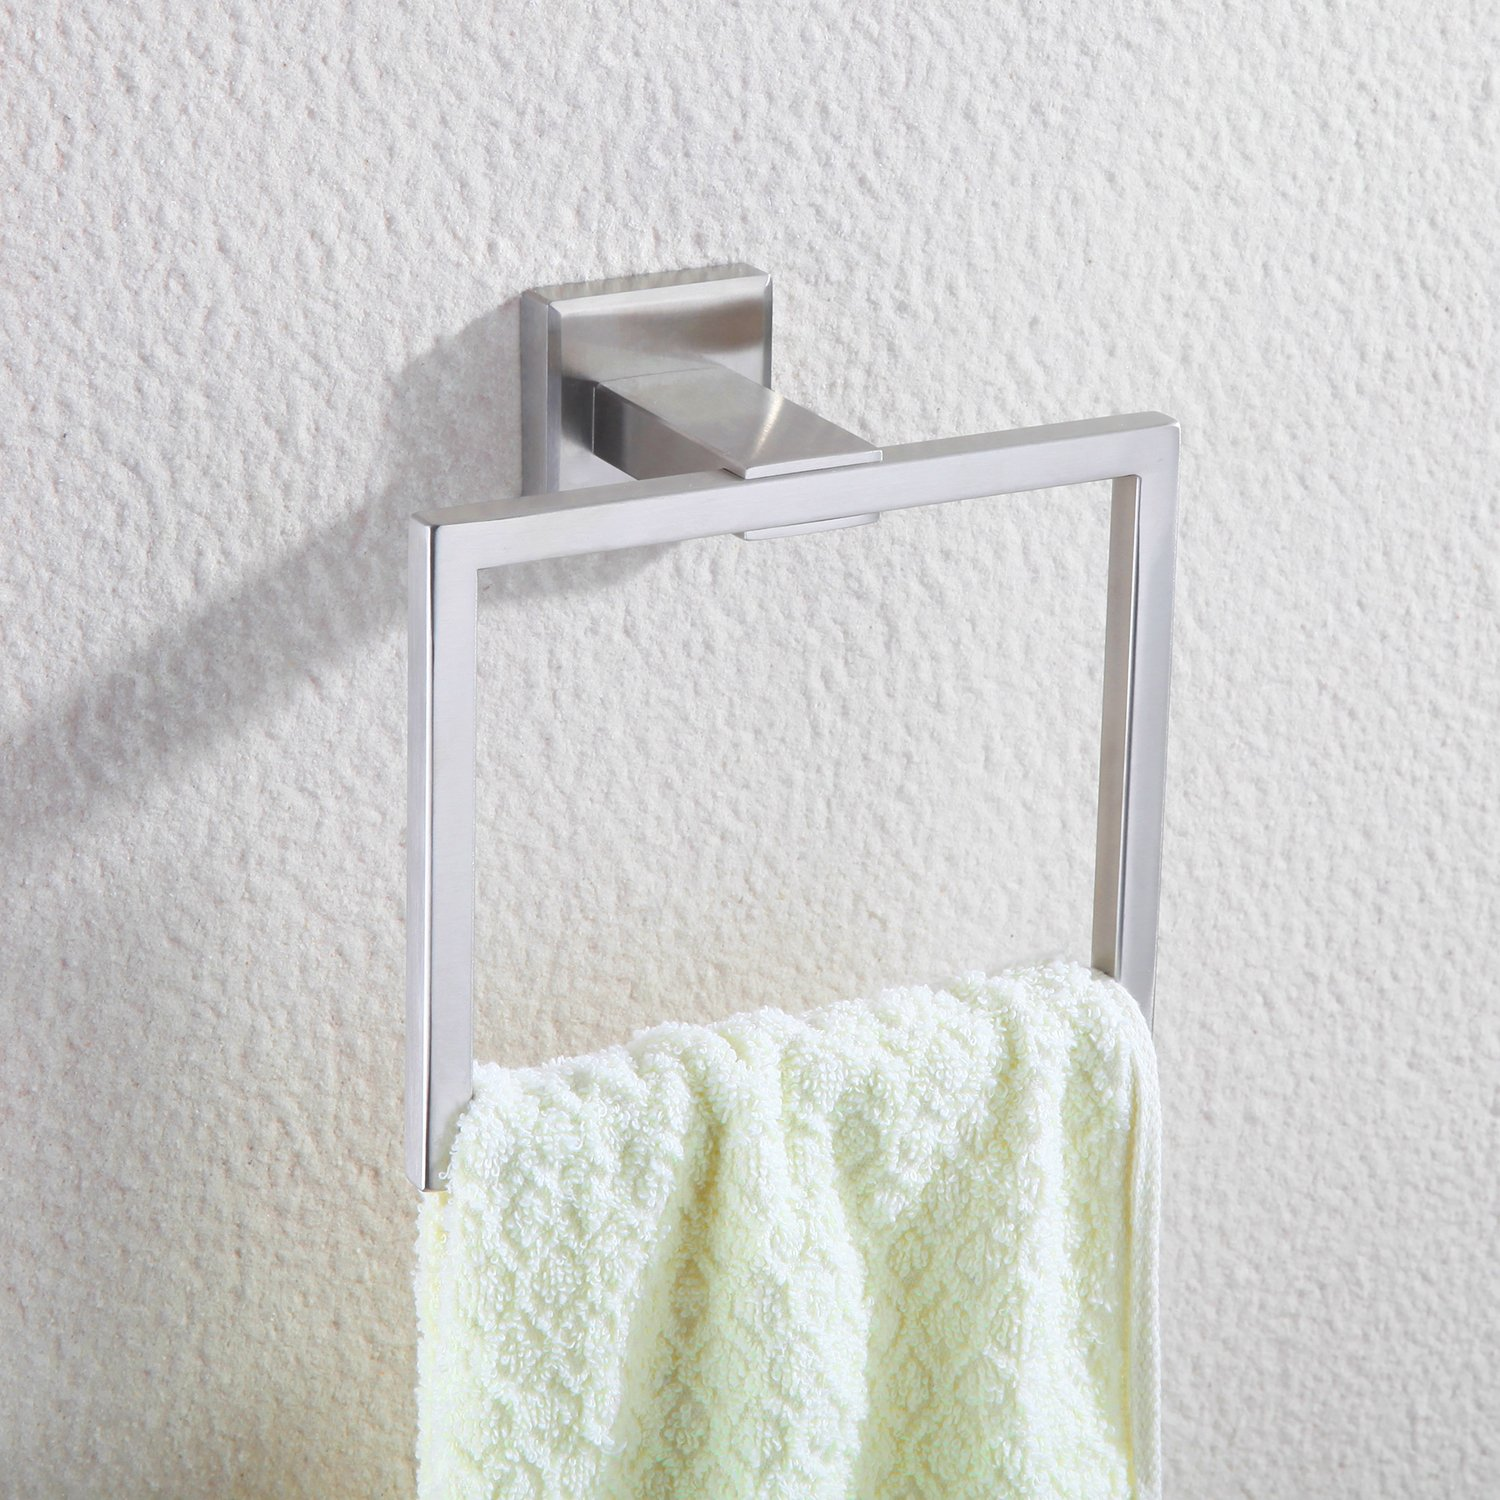 Haiying Bath Towel Holder Hand Towel Ring Hanging Towel Hanger Bathroom Accessories Contemporary Hotel Square Style Wall Mount, Brushed SUS 304 Stainless Steel Finish